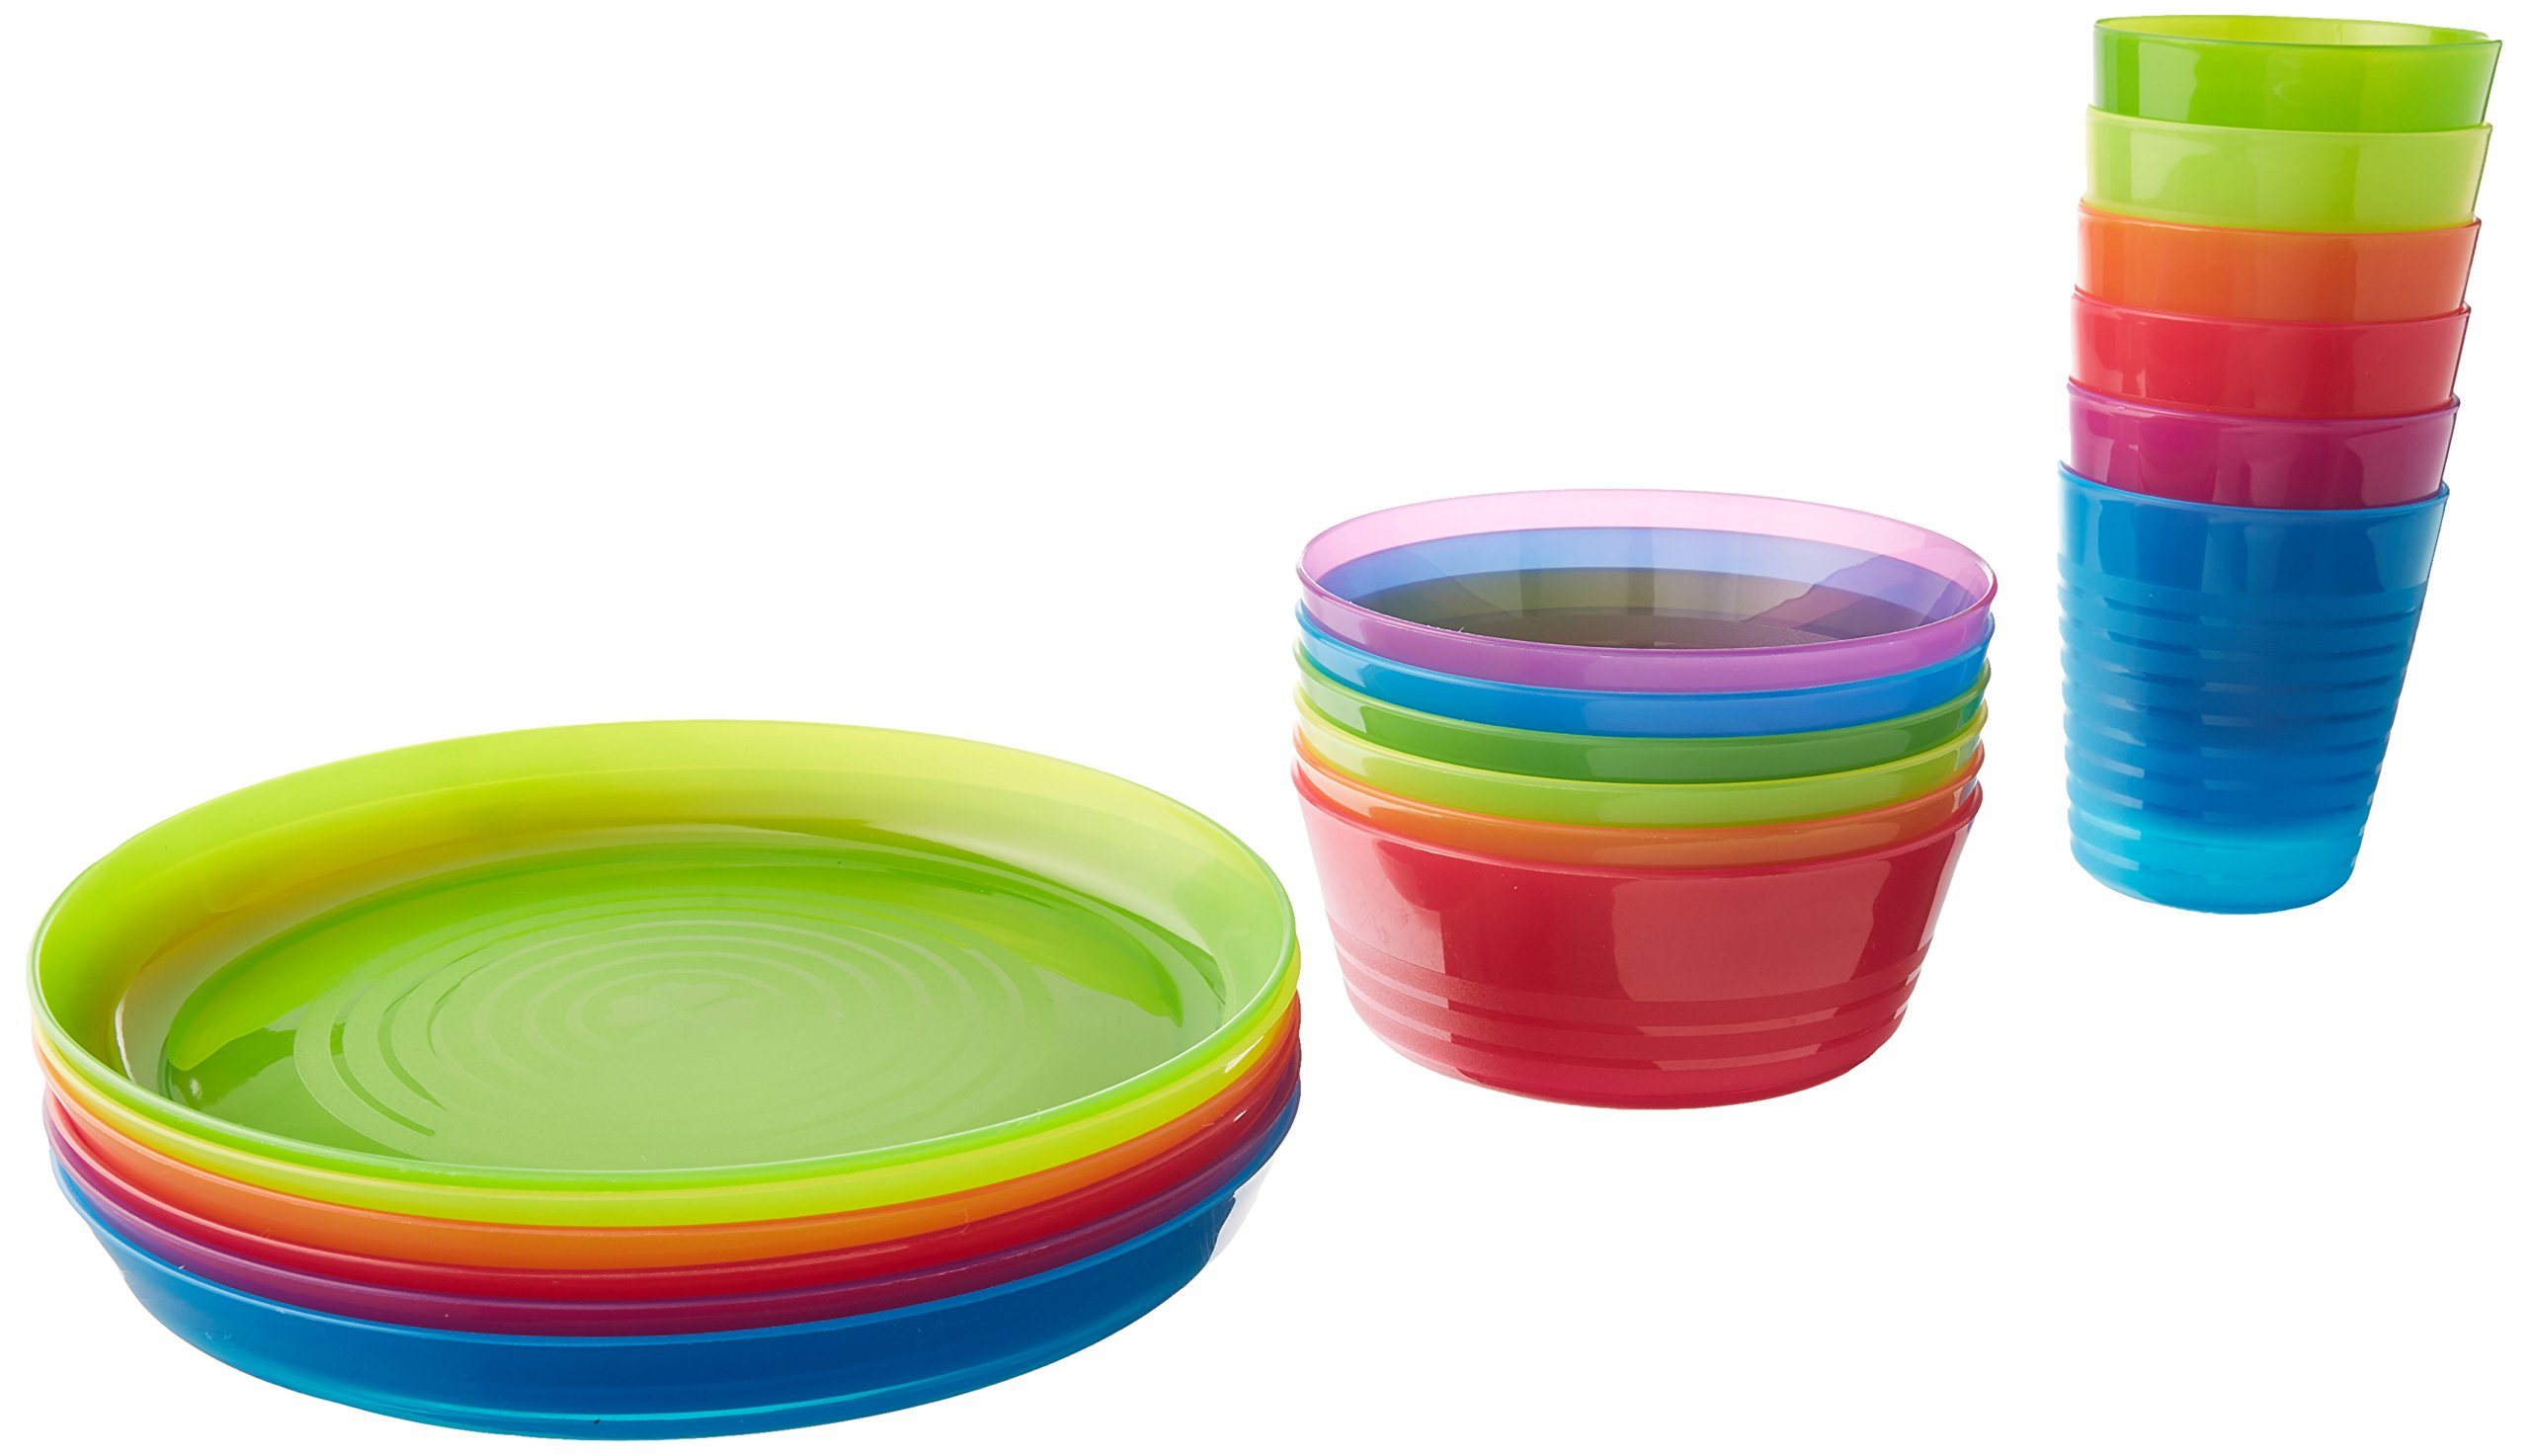 IKEA - KALAS Children Color Bowl, Tumbler and Plate Sets X6 Each (Set of 18) by IKEA